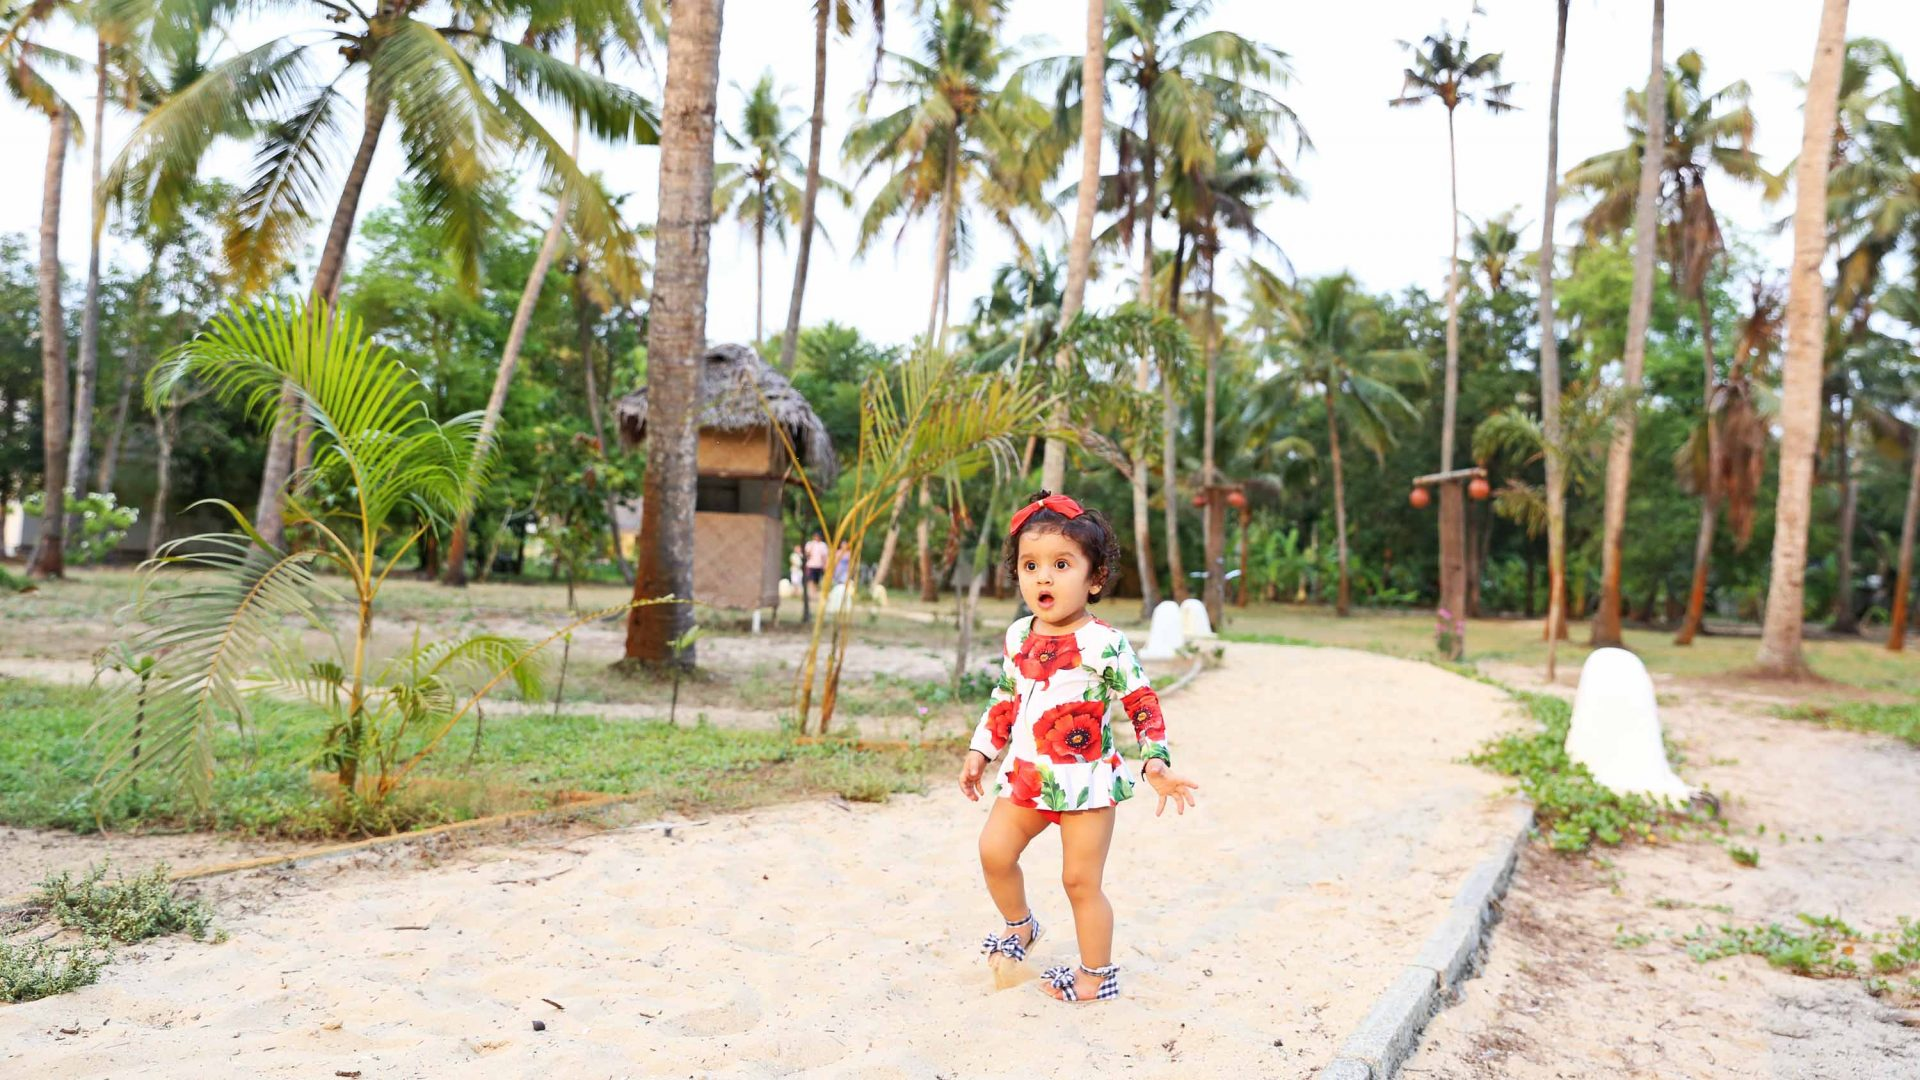 Baby Gia Sereni by the beach in Kerala, southern India, during her travels wit her mother.